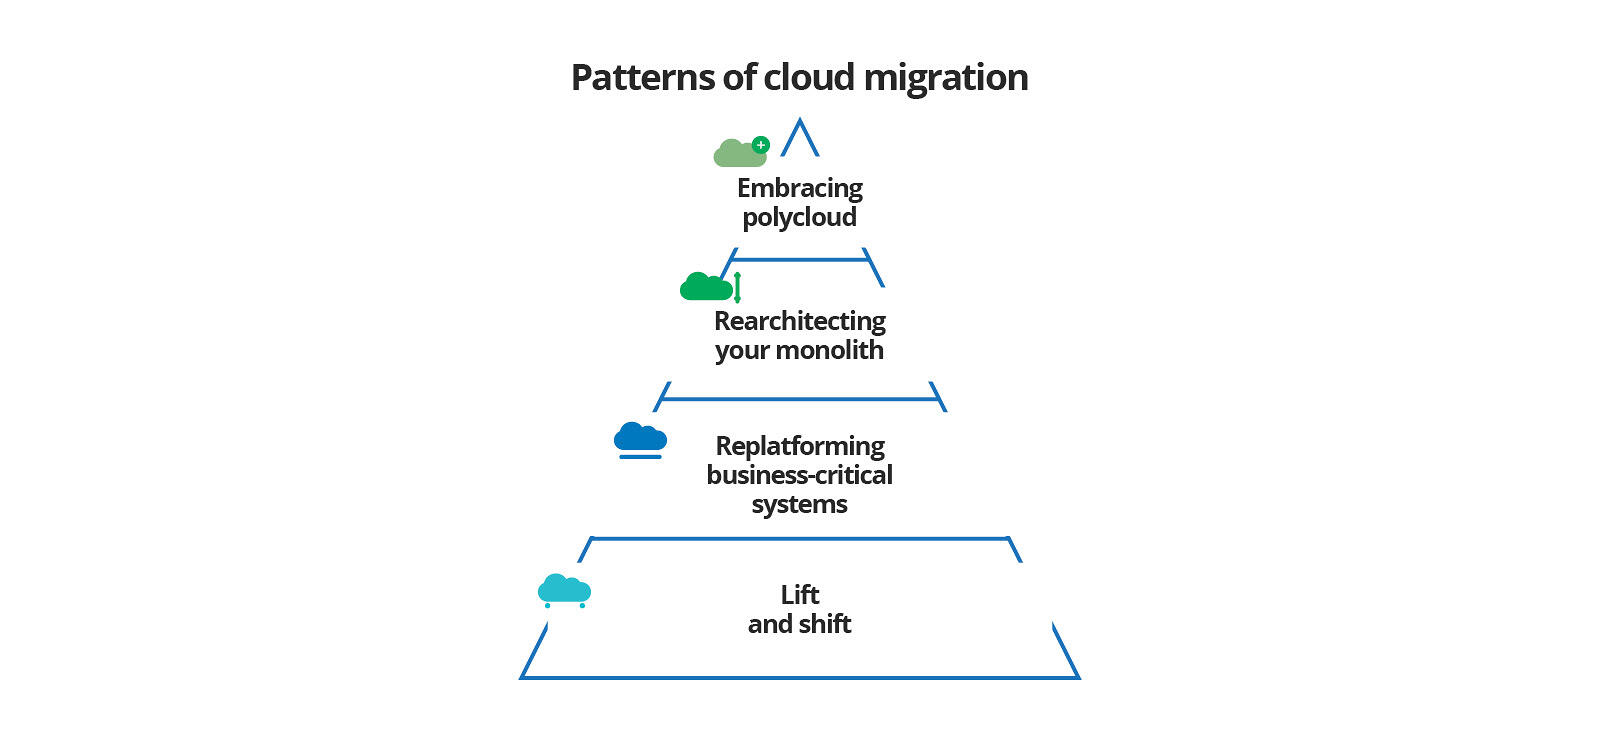 Patterns of cloud migration